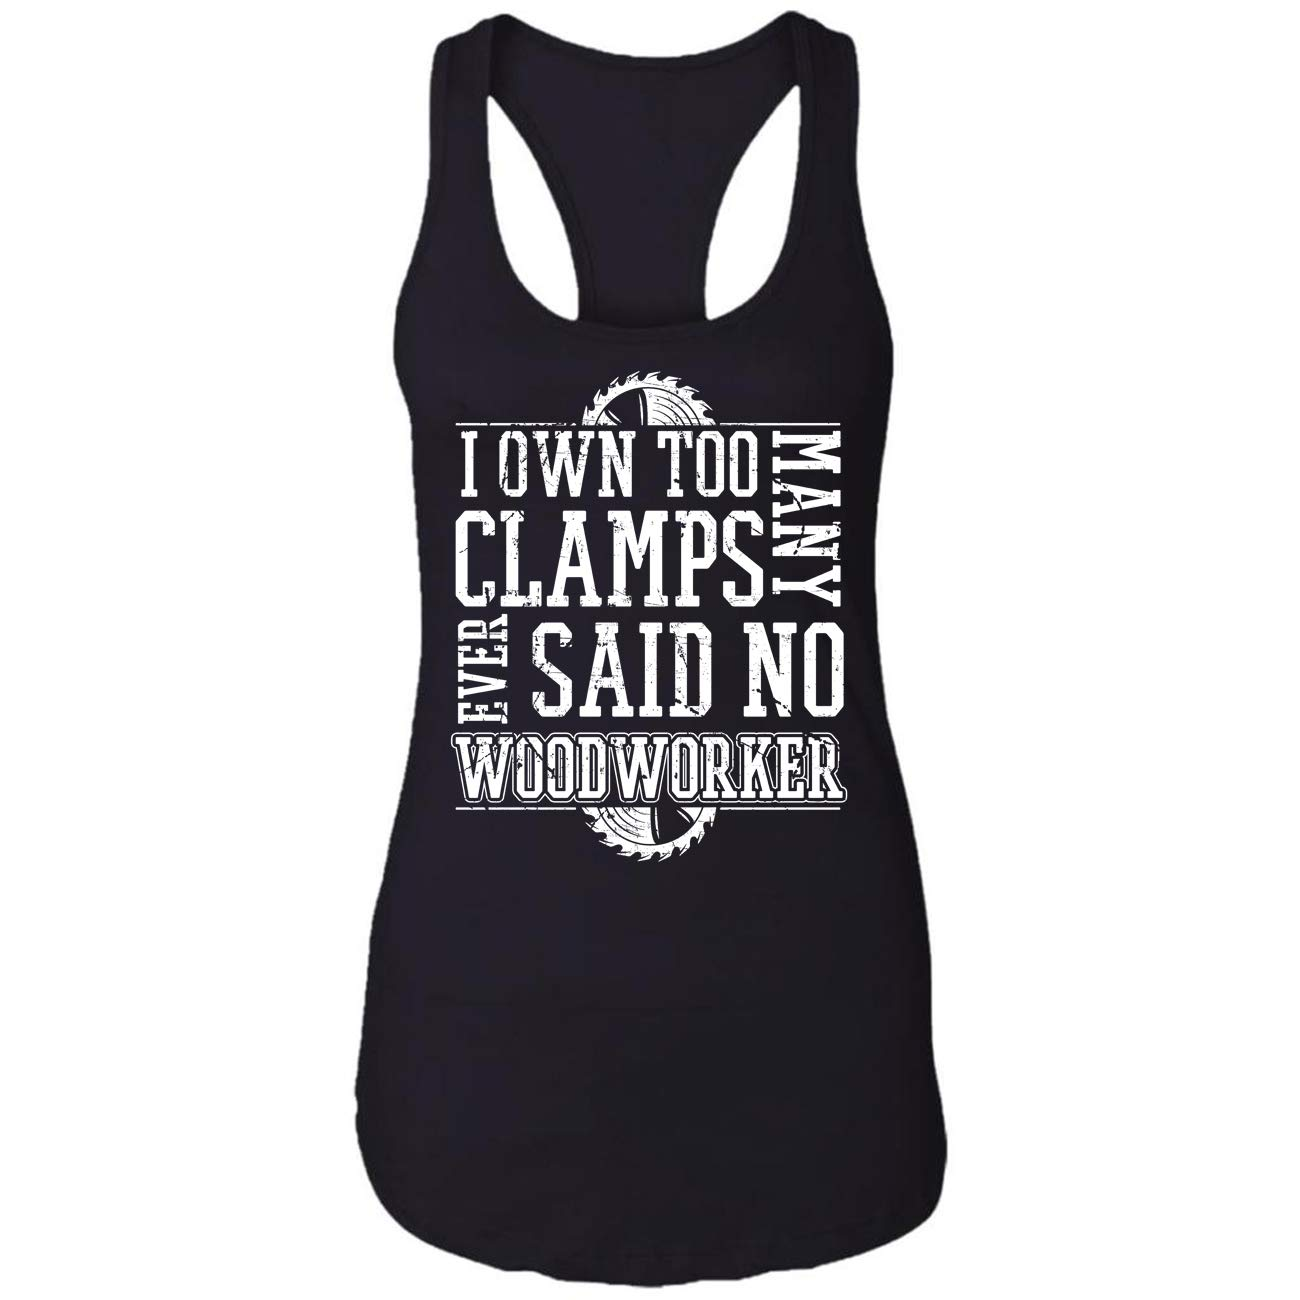 I Owns Too Many Clamps Said No Woodworker Ever Woodworking T Racerback Tank Top